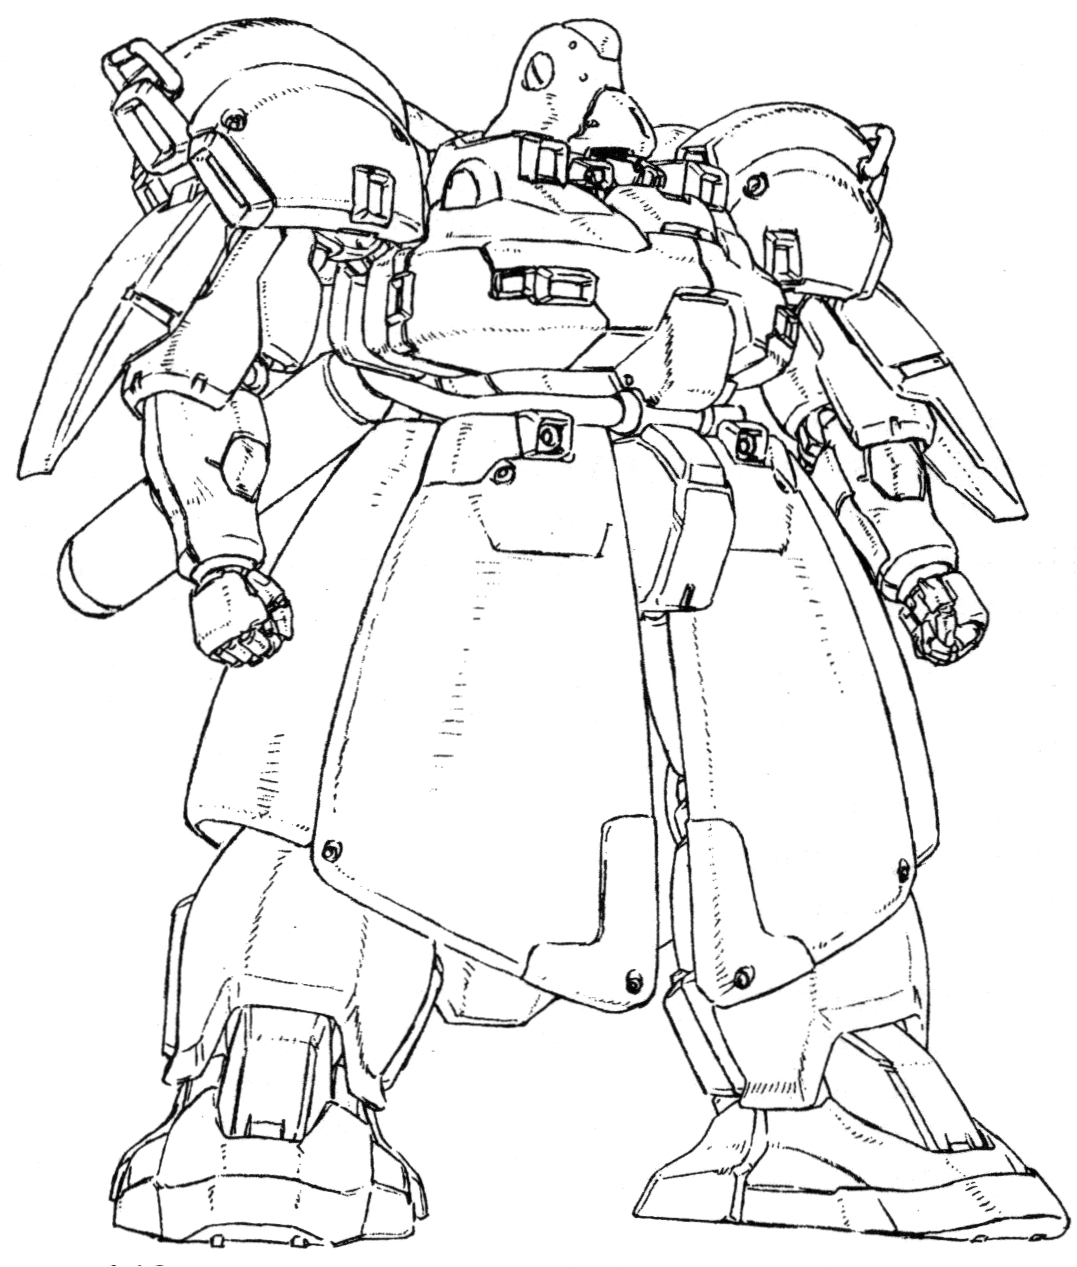 The Pmx 005 Breda Is A Land Based Mobile Suit Variant Of